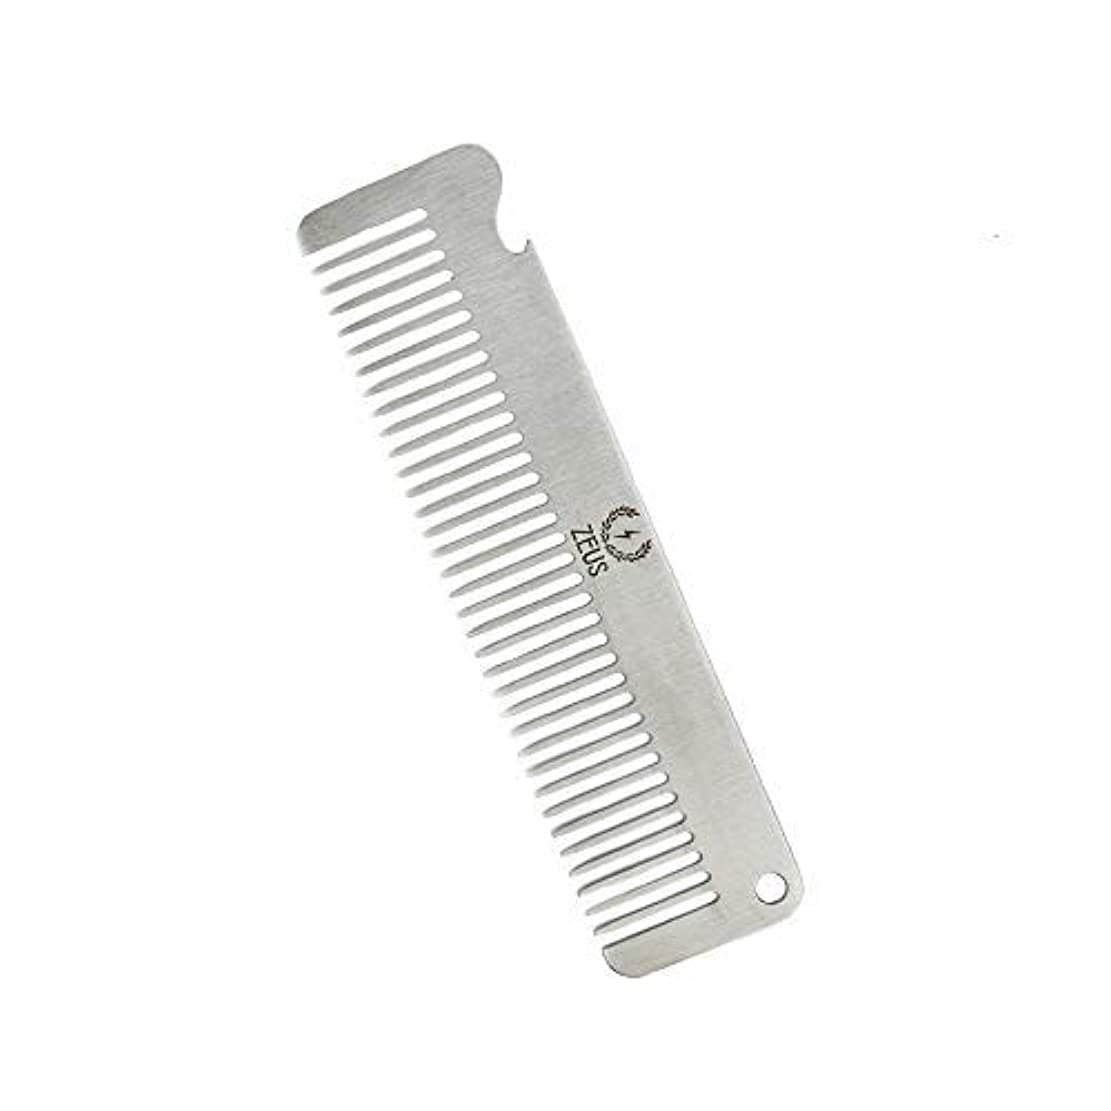 シロクマ鷲粘性のZEUS Stainless Steel Comb with Bottle Opener - Beard Comb for Men! (Comb) [並行輸入品]